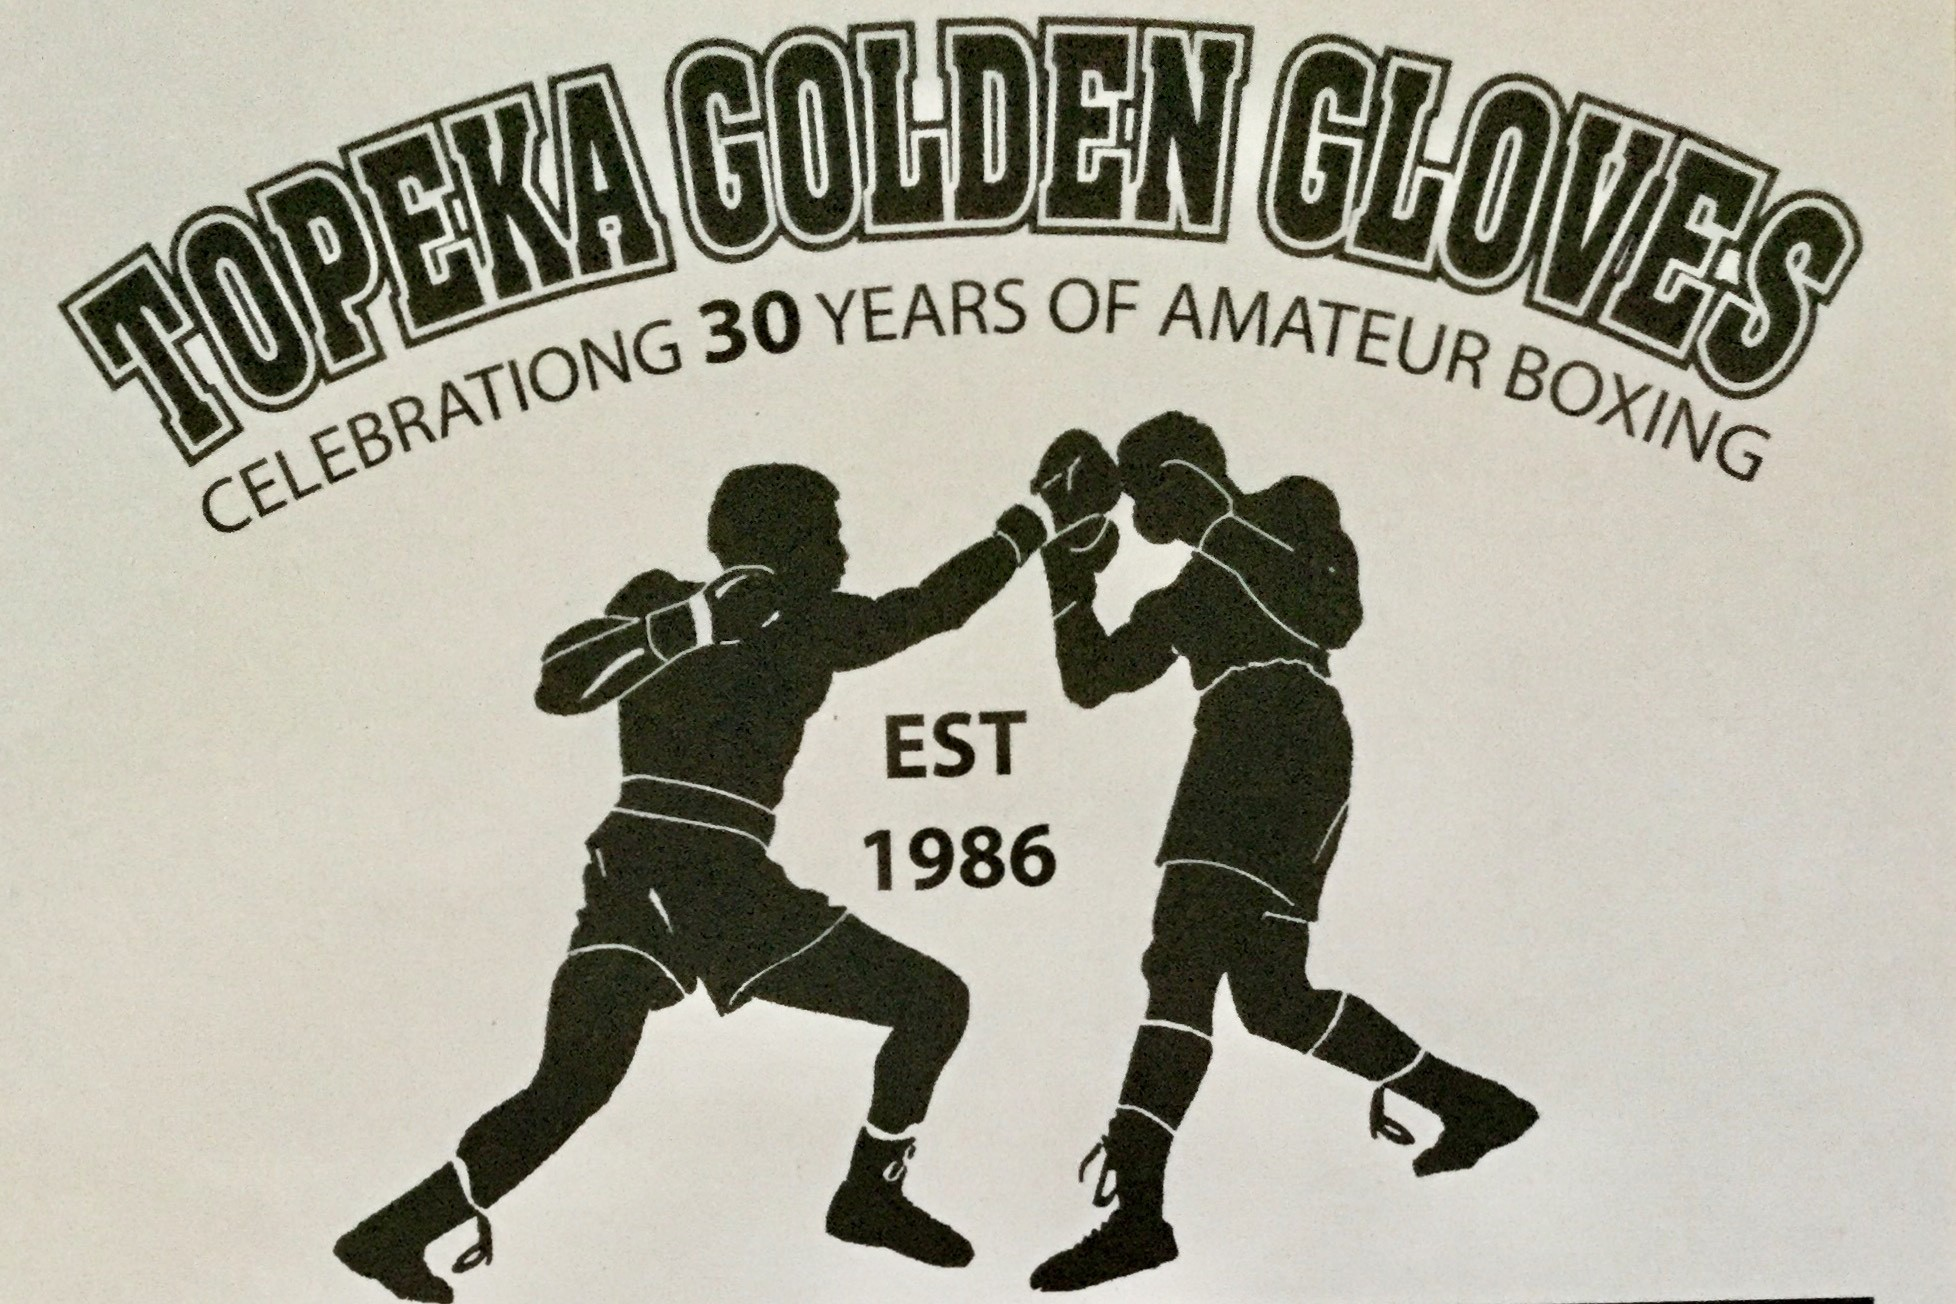 Topeka Golden Gloves